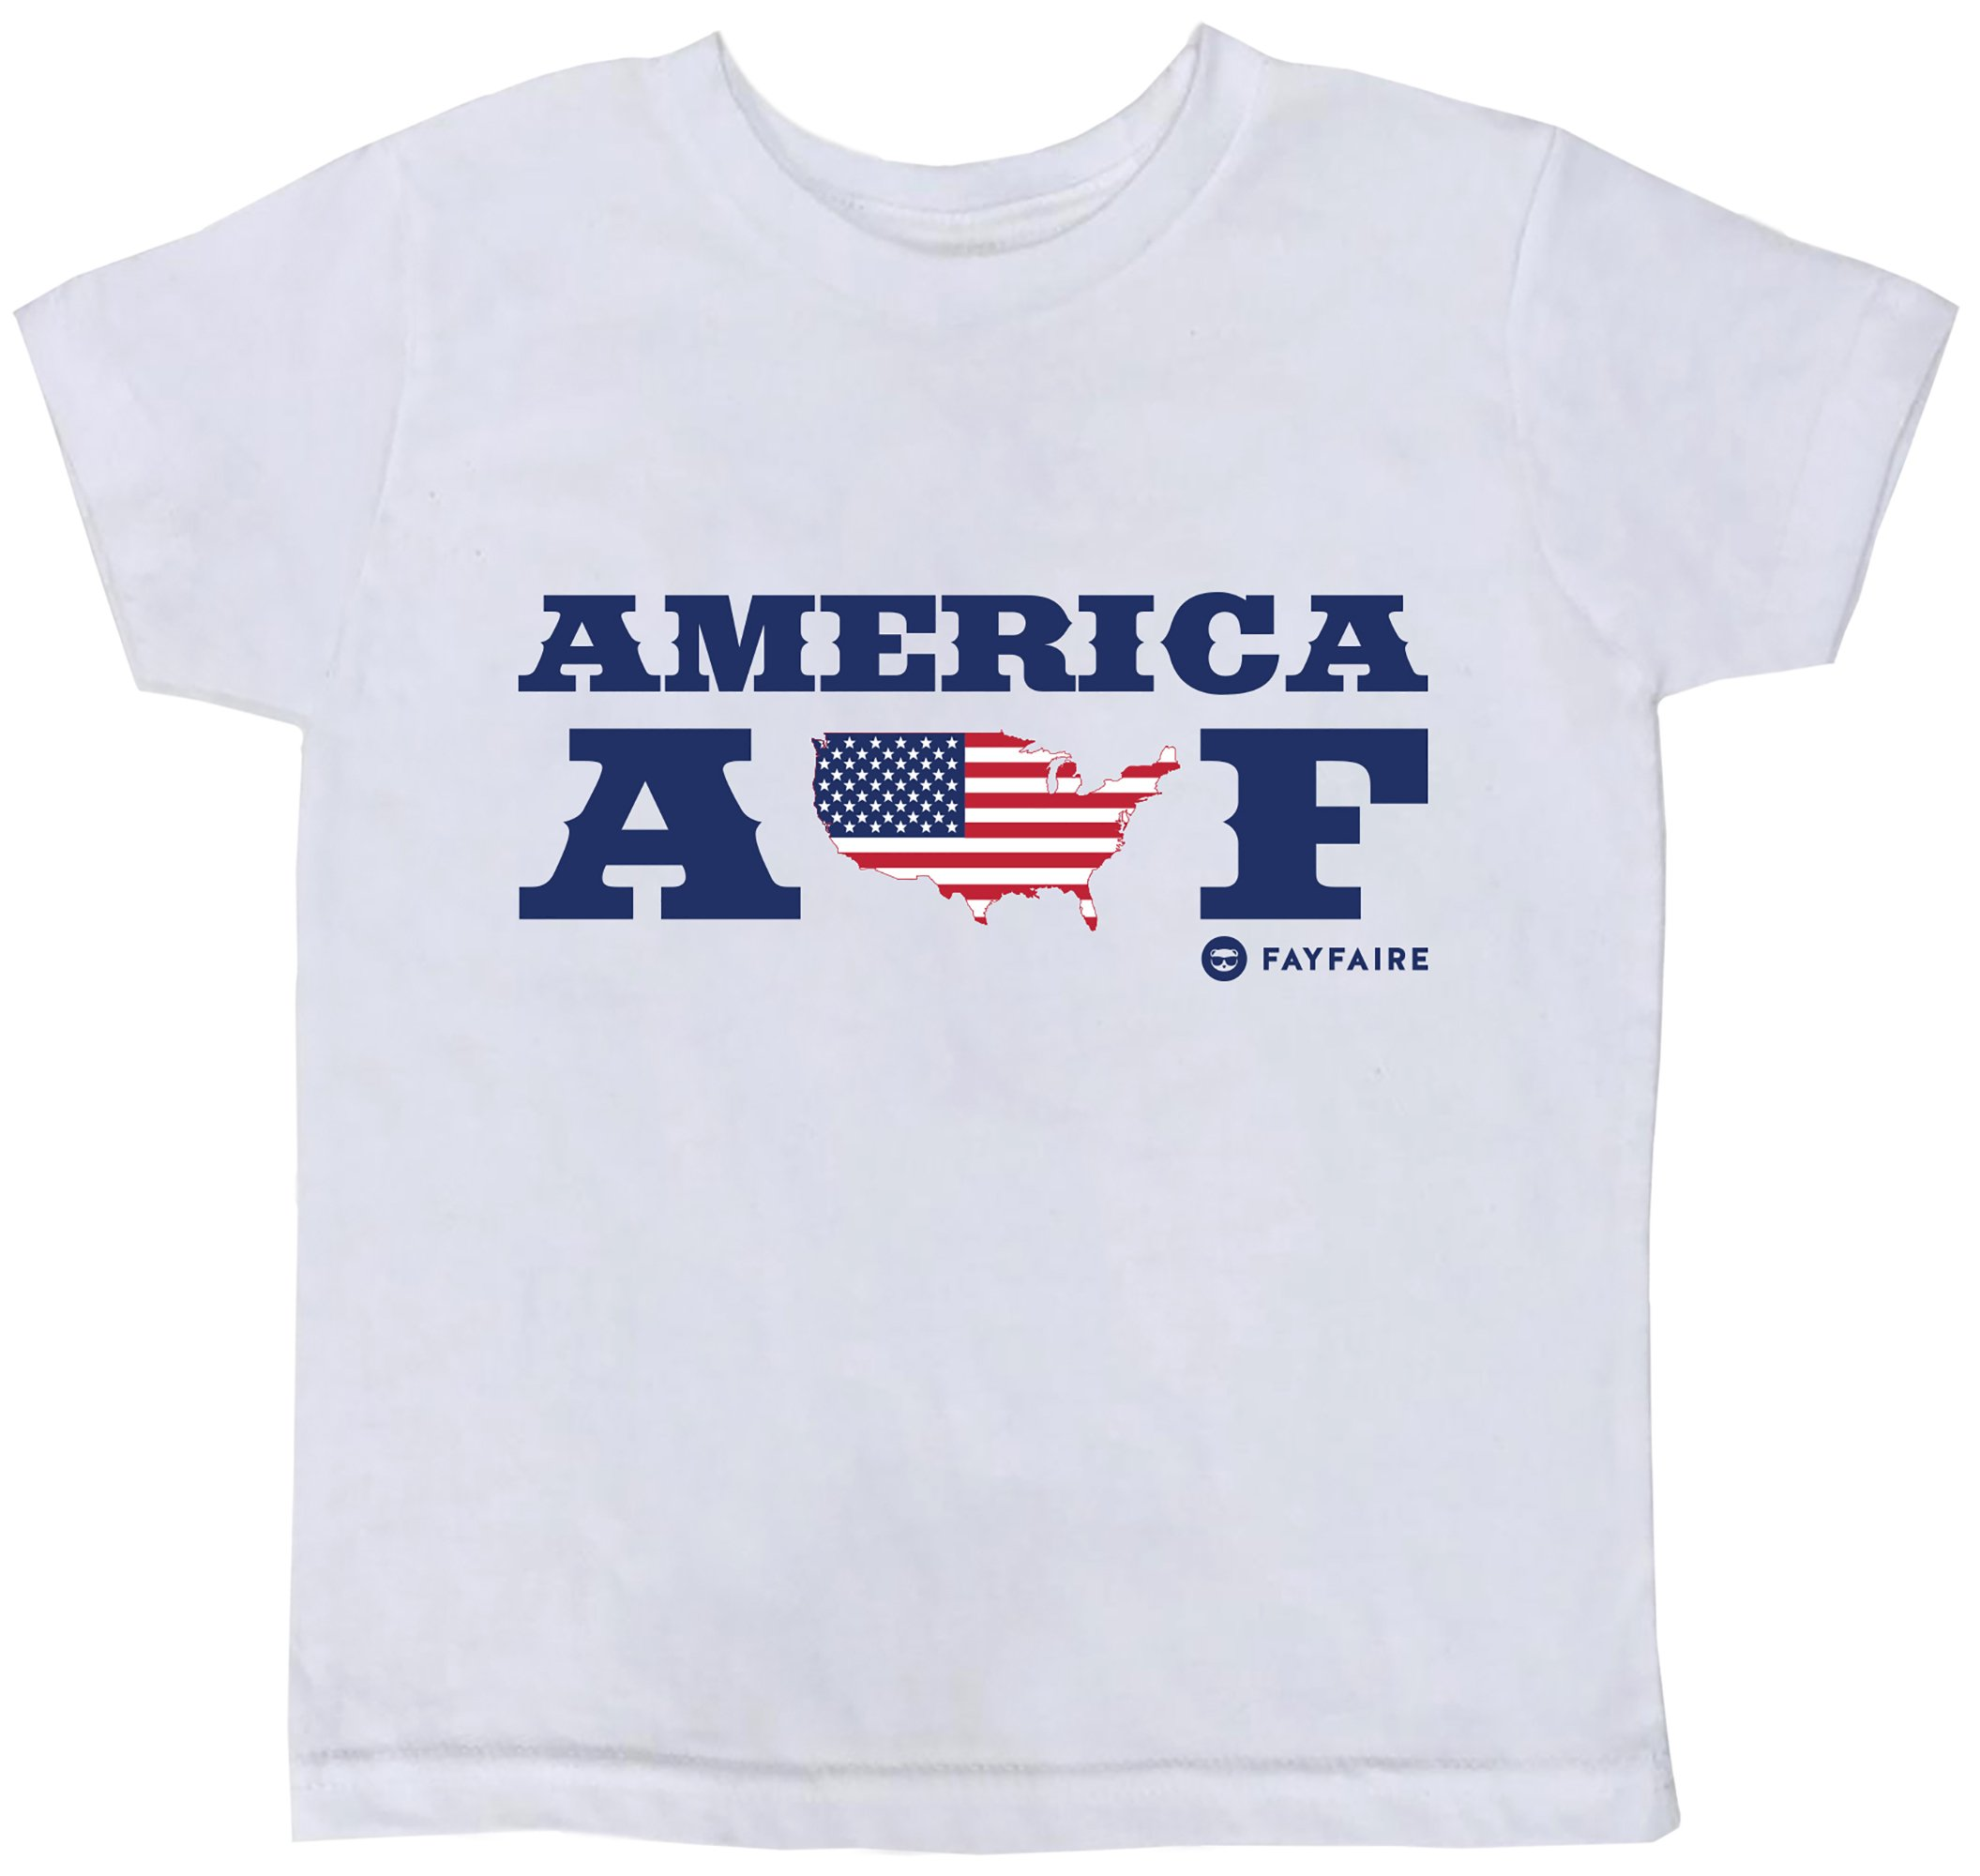 Fayfaire 4th of July Independence Day Shirts for Girls and Boys America AF 2T